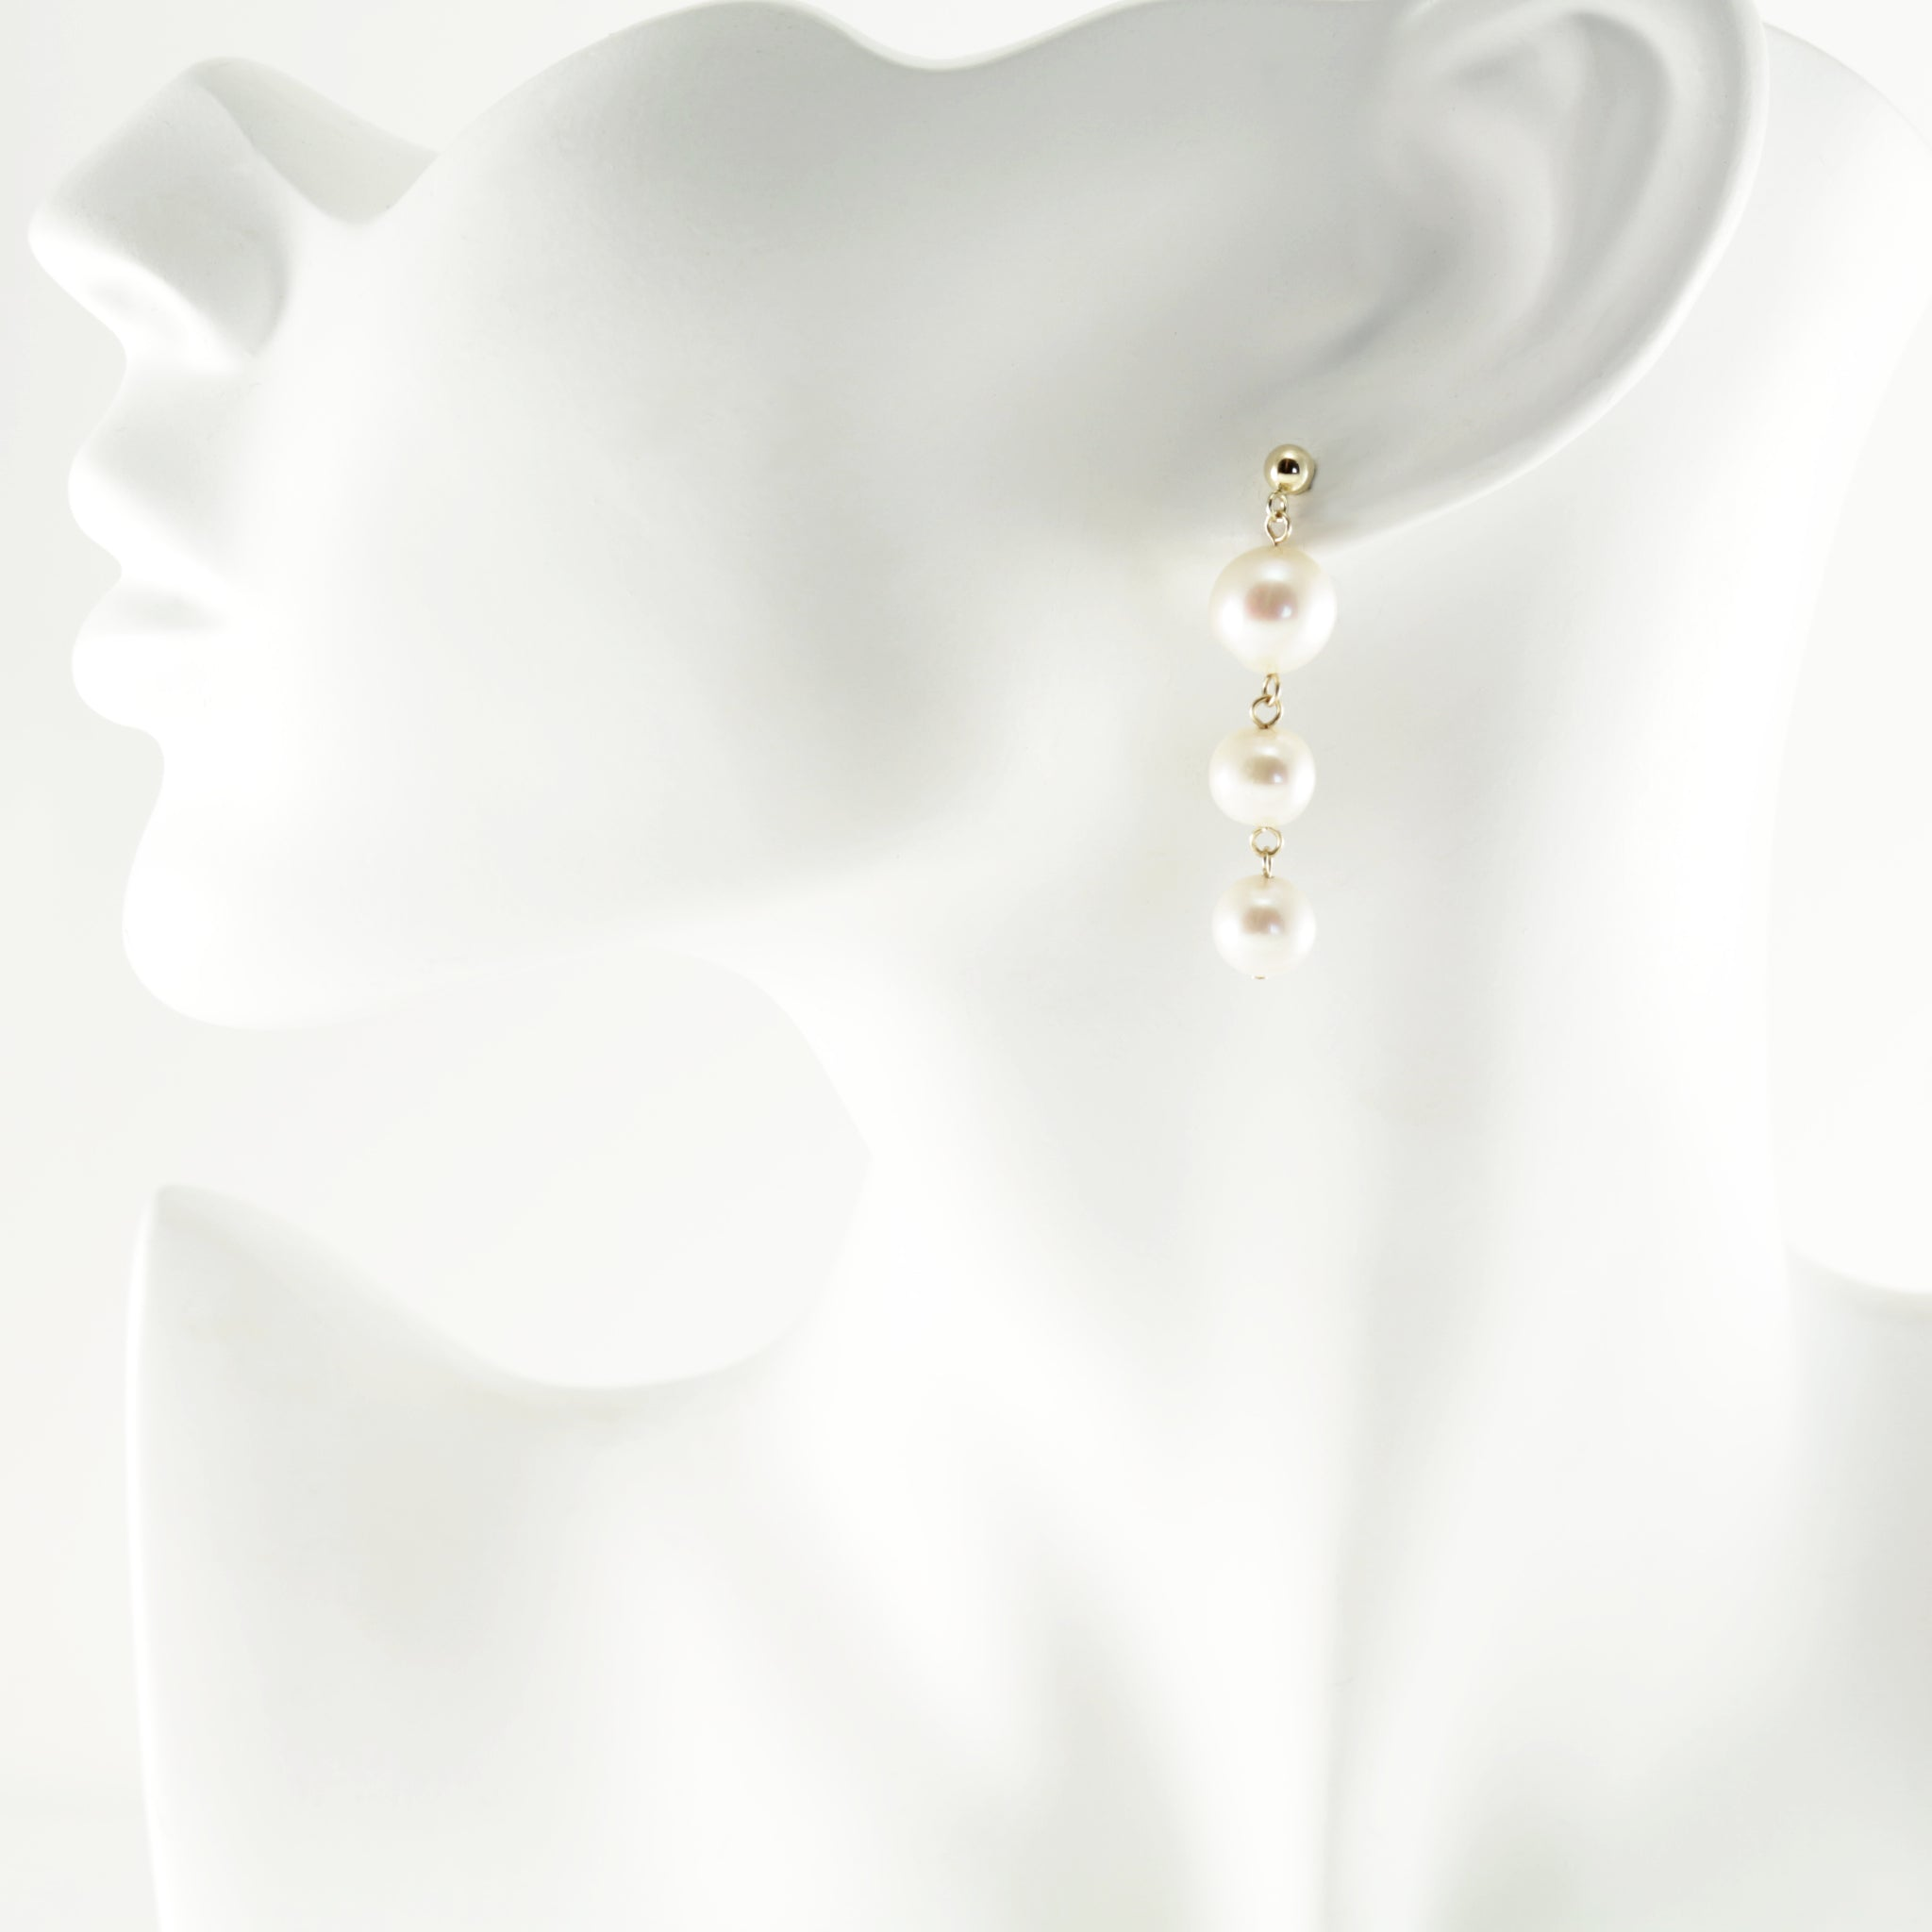 Waterfall Earrings in Gold Short